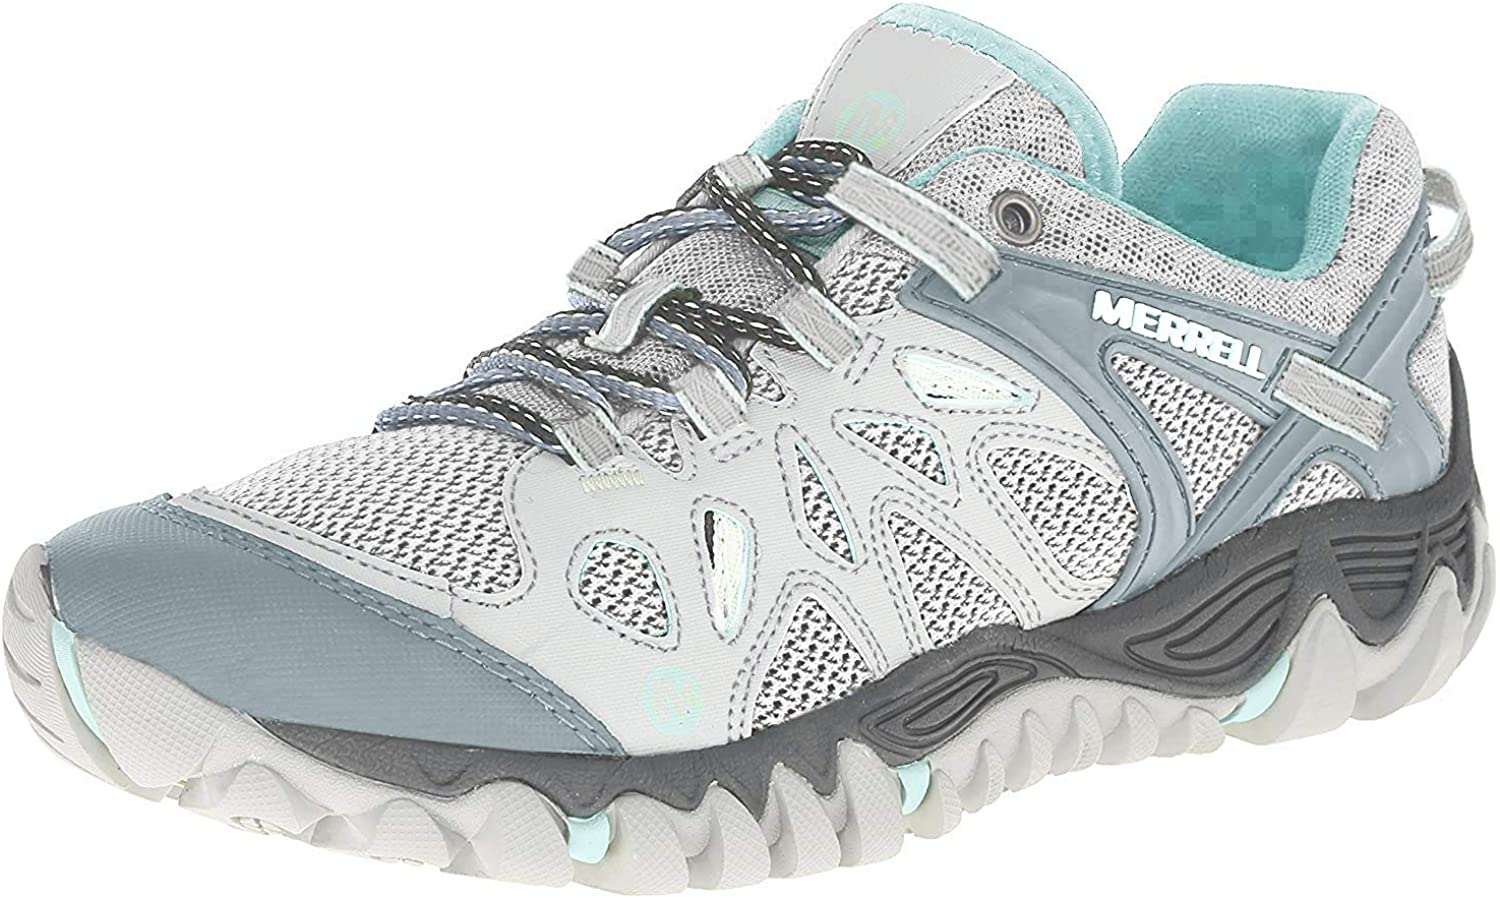 Merrell All out Blaze Aero Sport, Zapatillas Impermeables para ...